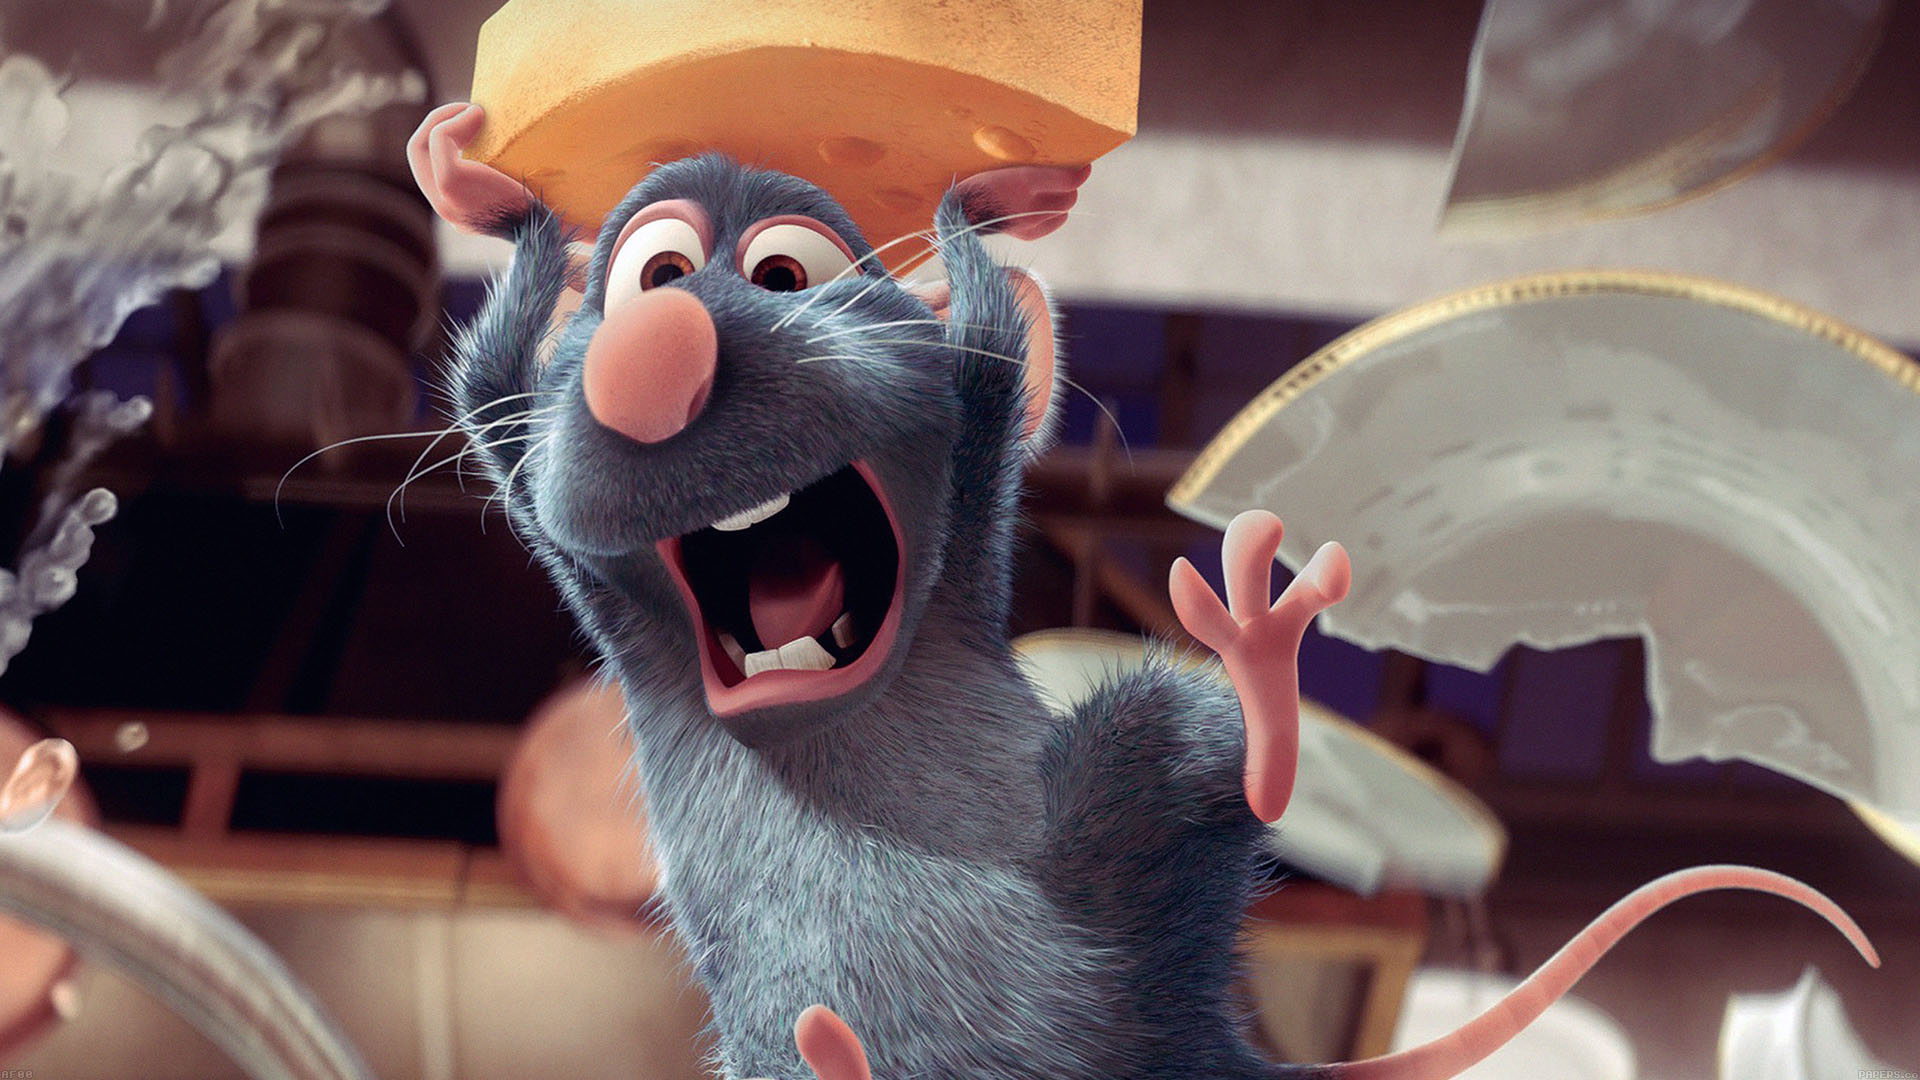 ratatouille film essay Ratatouille 20 3 11 question-how is food used in this film ratatouille is a book and film about a small rat names remy who comes to the french countryside.